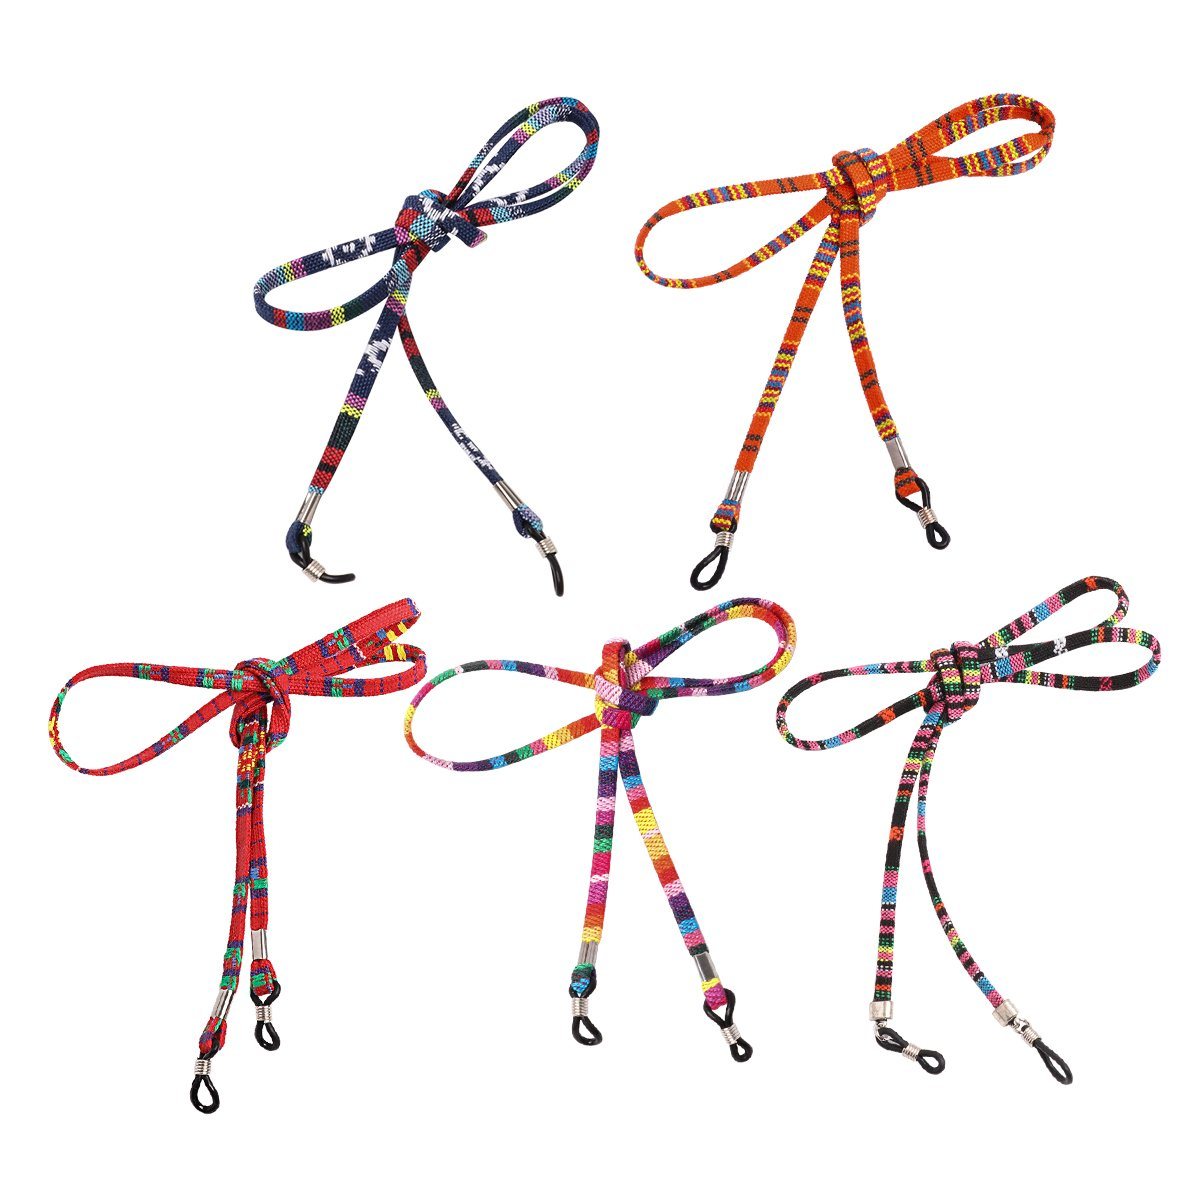 YiZYiF 5pcs Multicolor Eyewear Retainer Sunglasses Neck Cord Safety Strap Holder Eyeglass Glasses String Lanyard Multicolor Type A